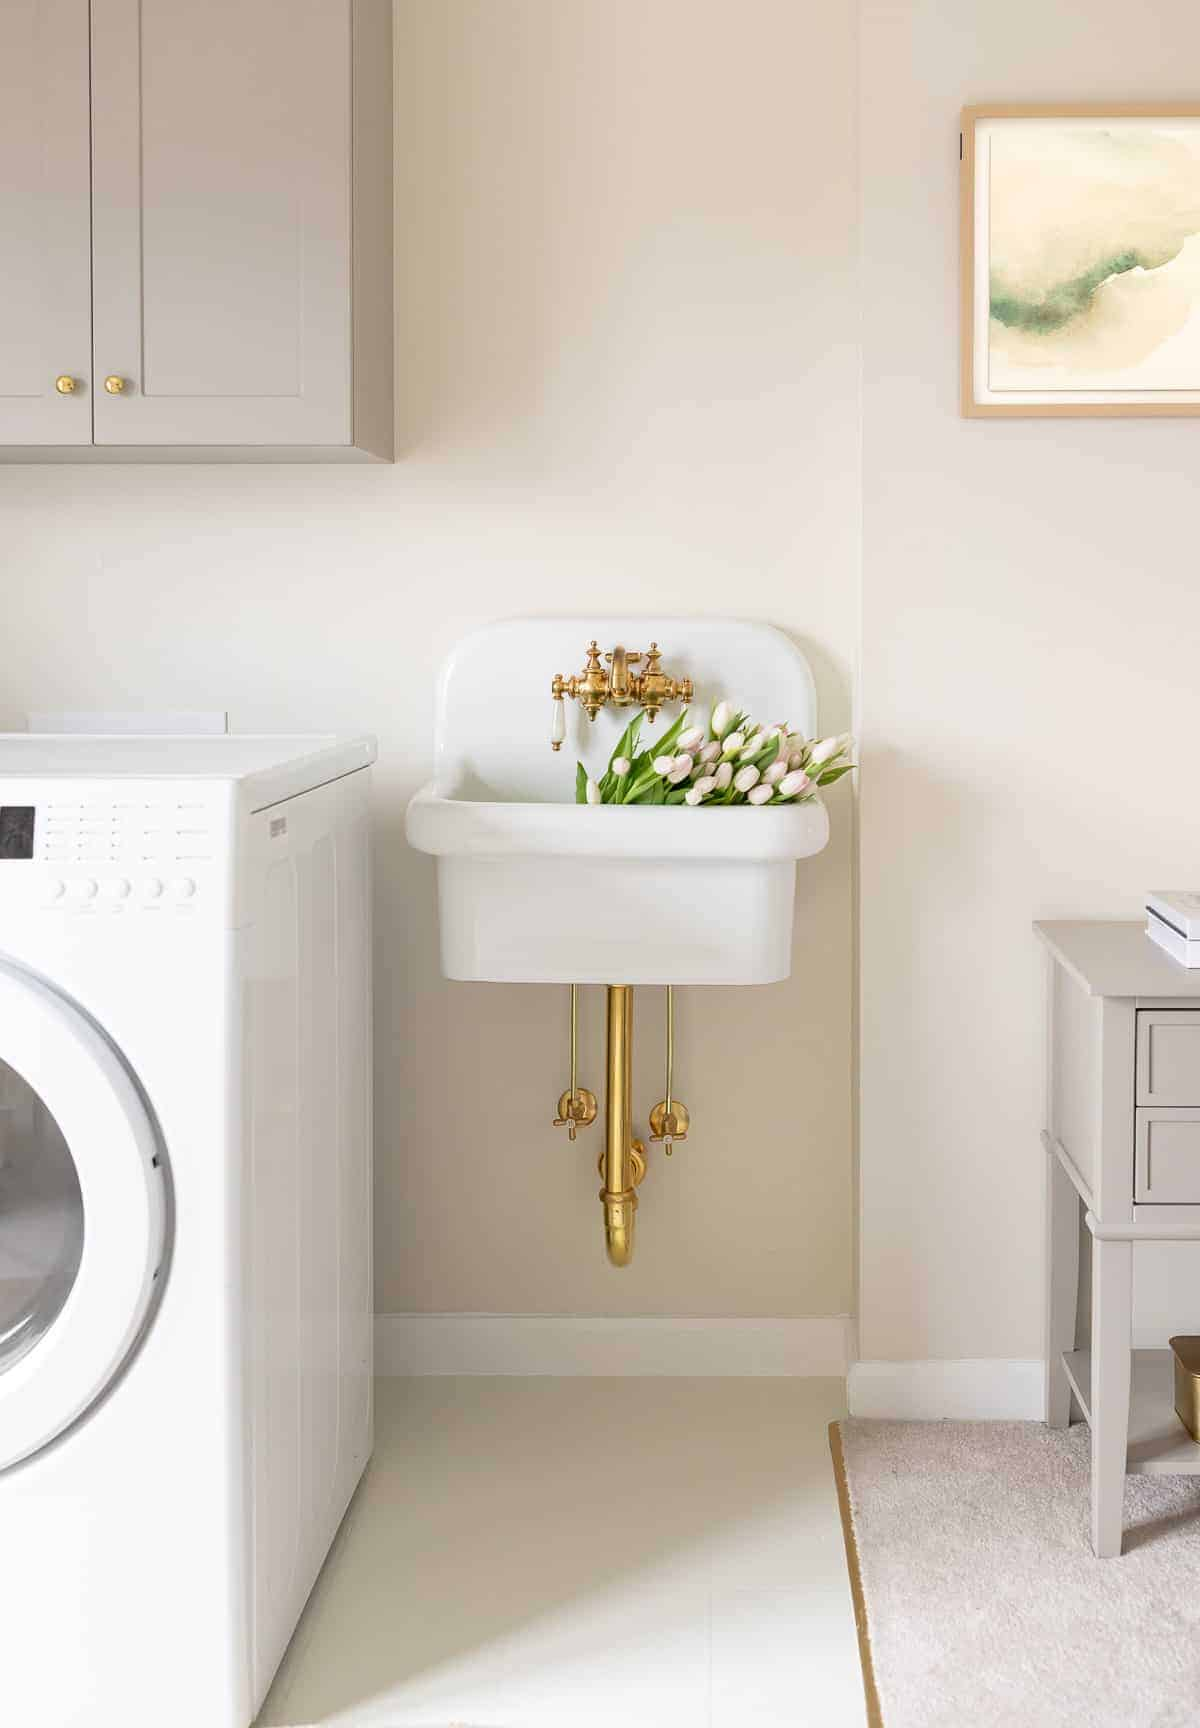 cream and gray laundry room with painted linoleum floor